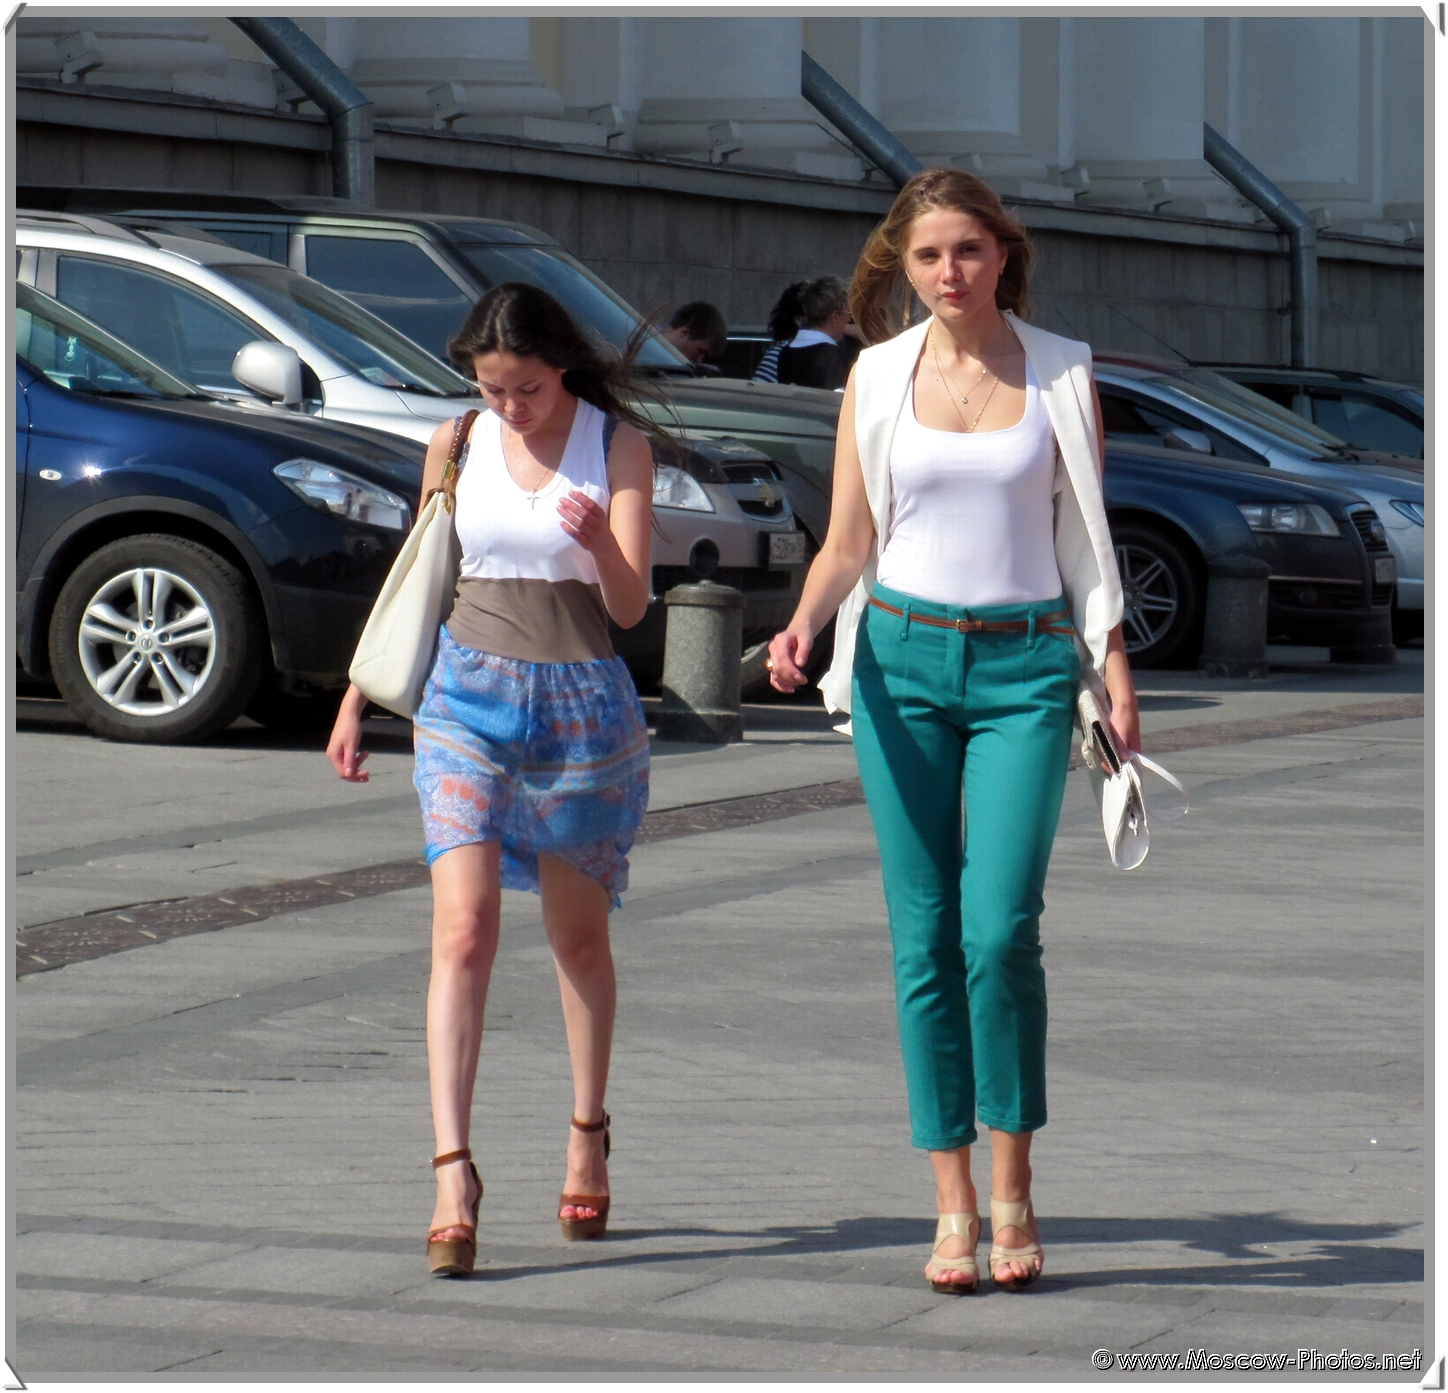 Moscow Girls on the Street